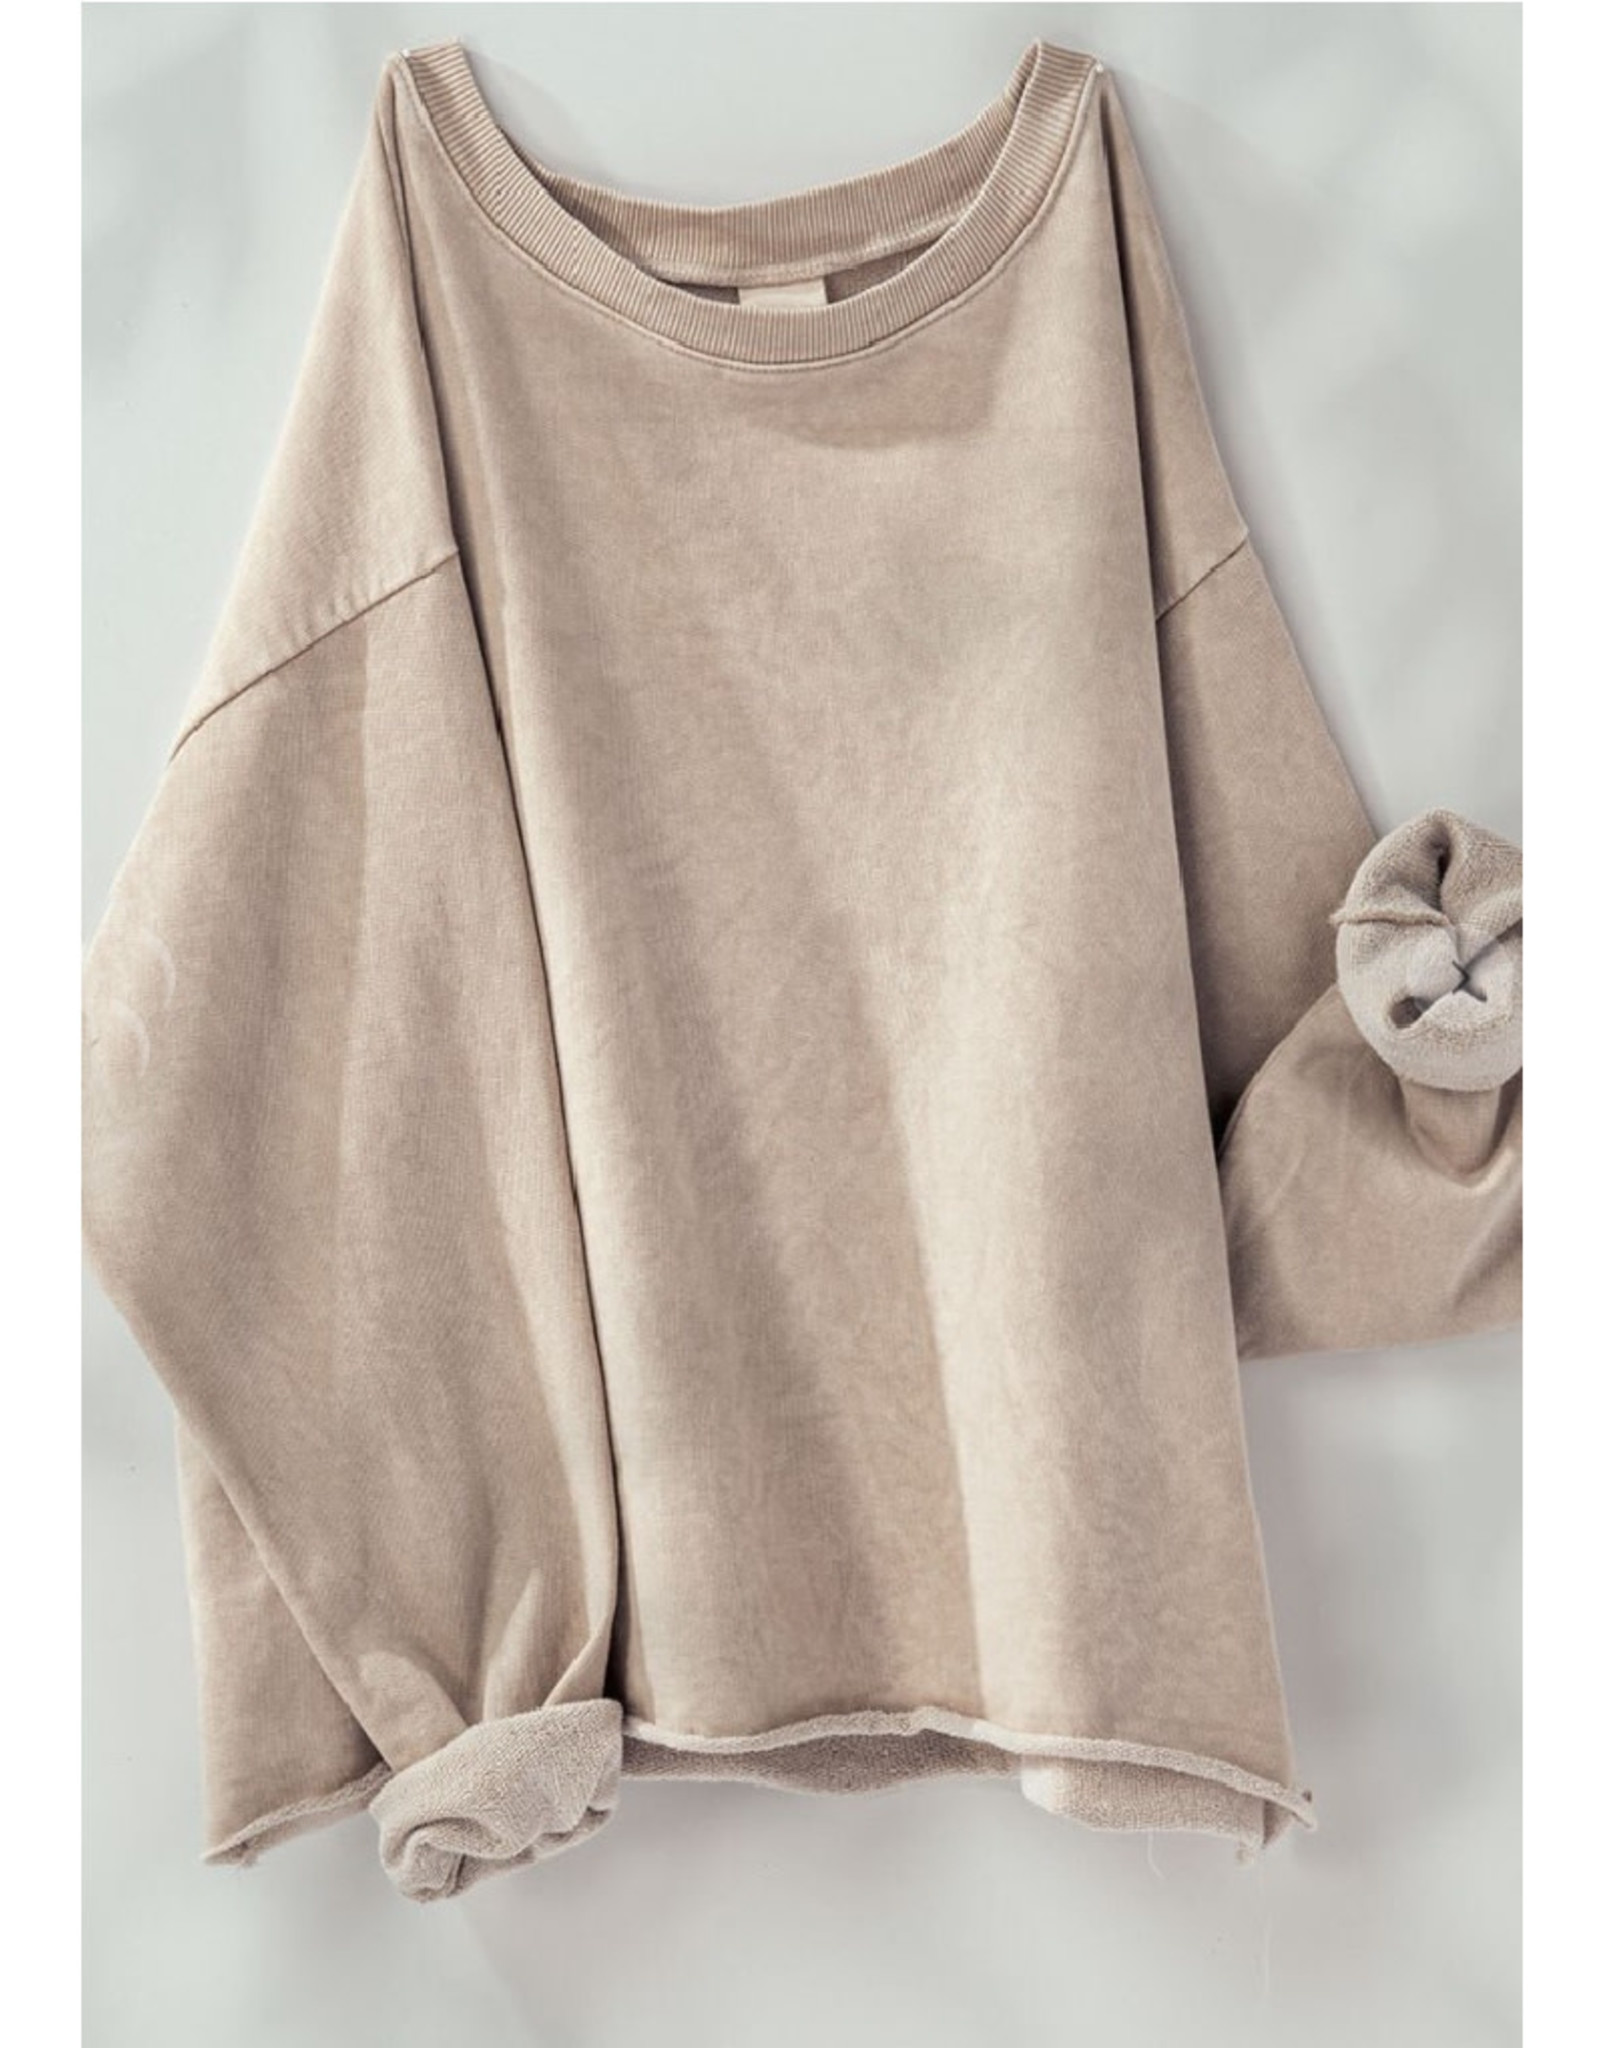 French Terry Cropped Sweatshirt in Taupe